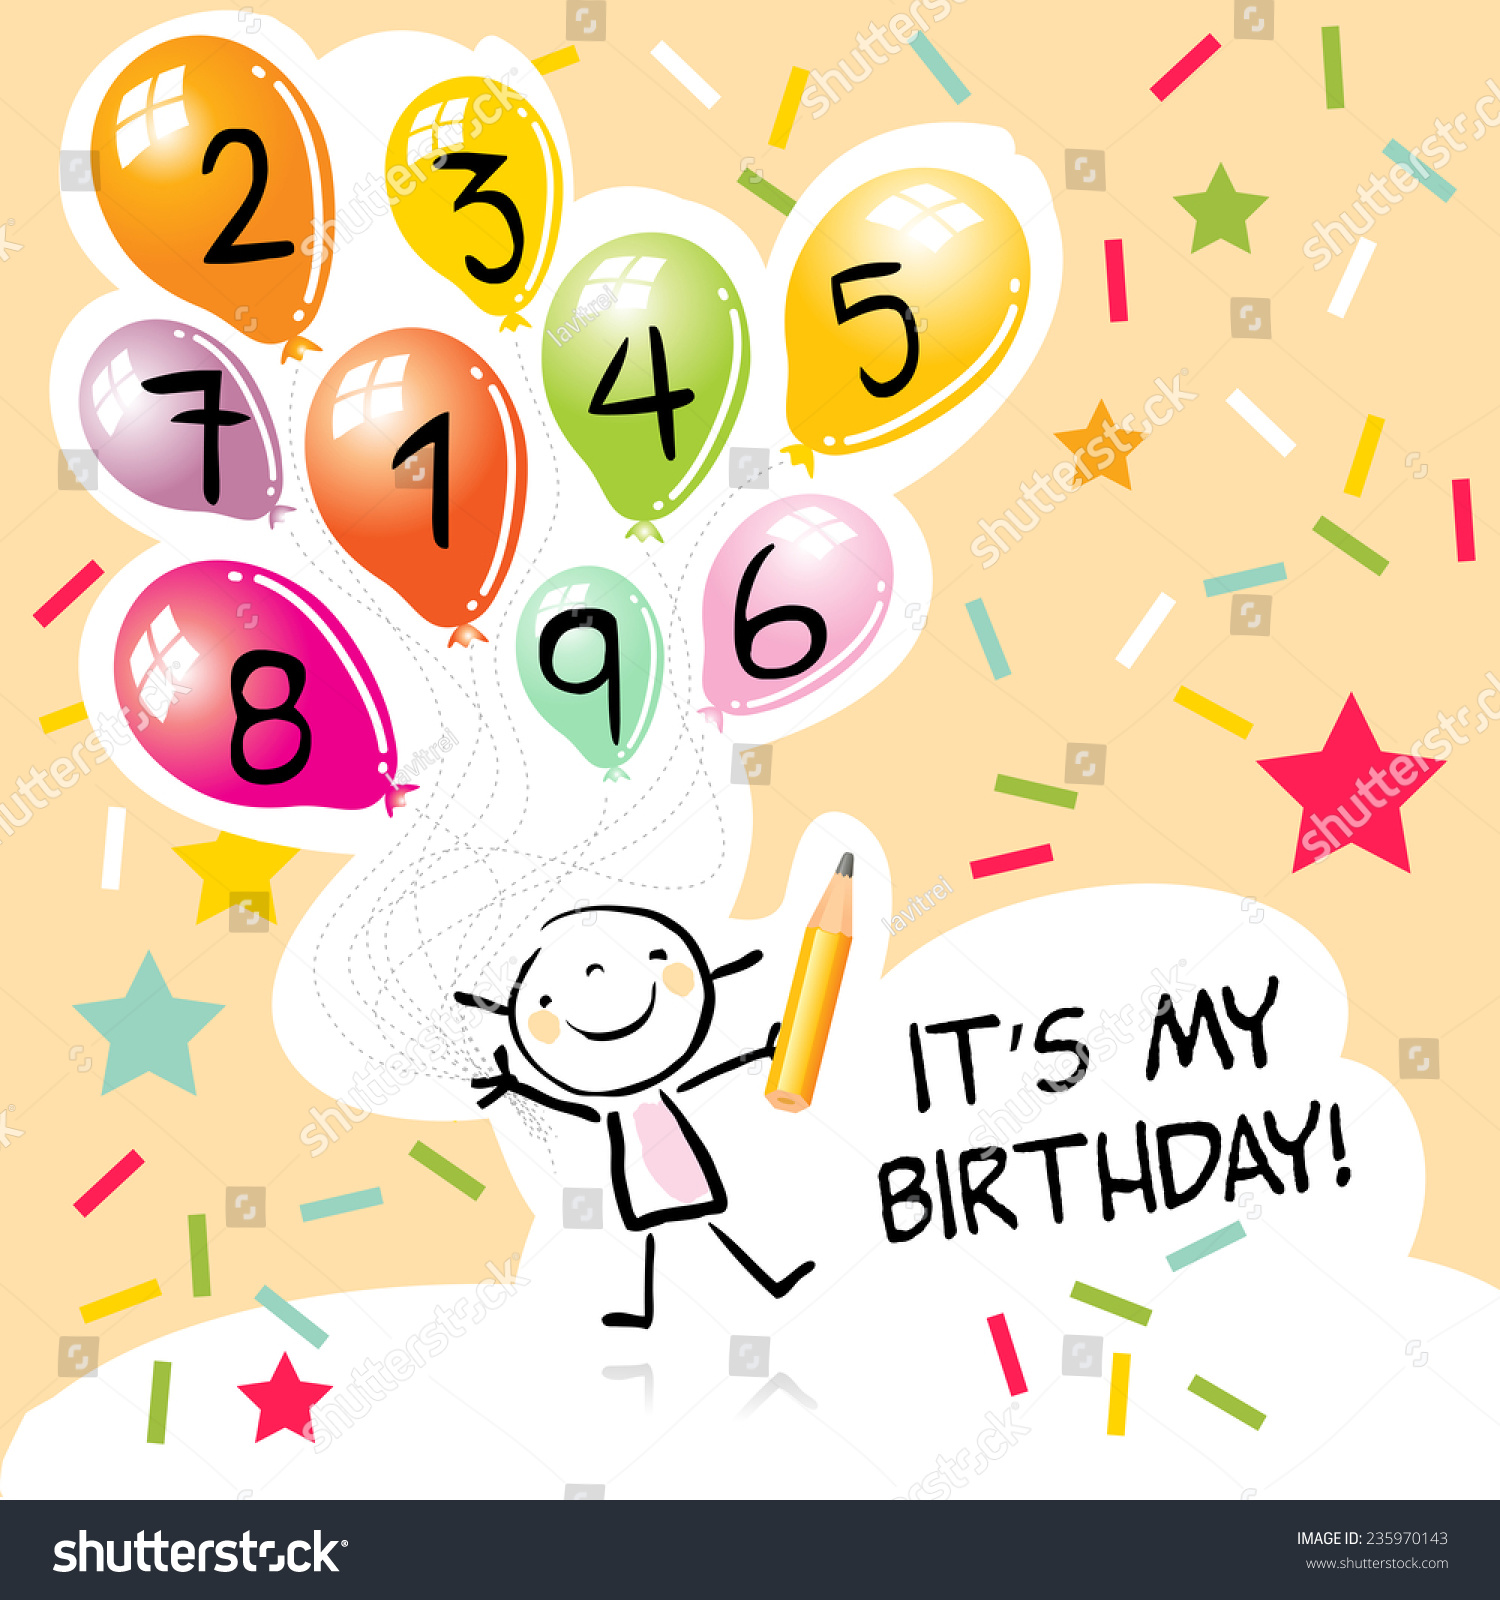 Happy birthday greeting card party invitation stock vector 235970143 happy birthday greeting card party invitation colorful balloons with doodle line art kristyandbryce Image collections